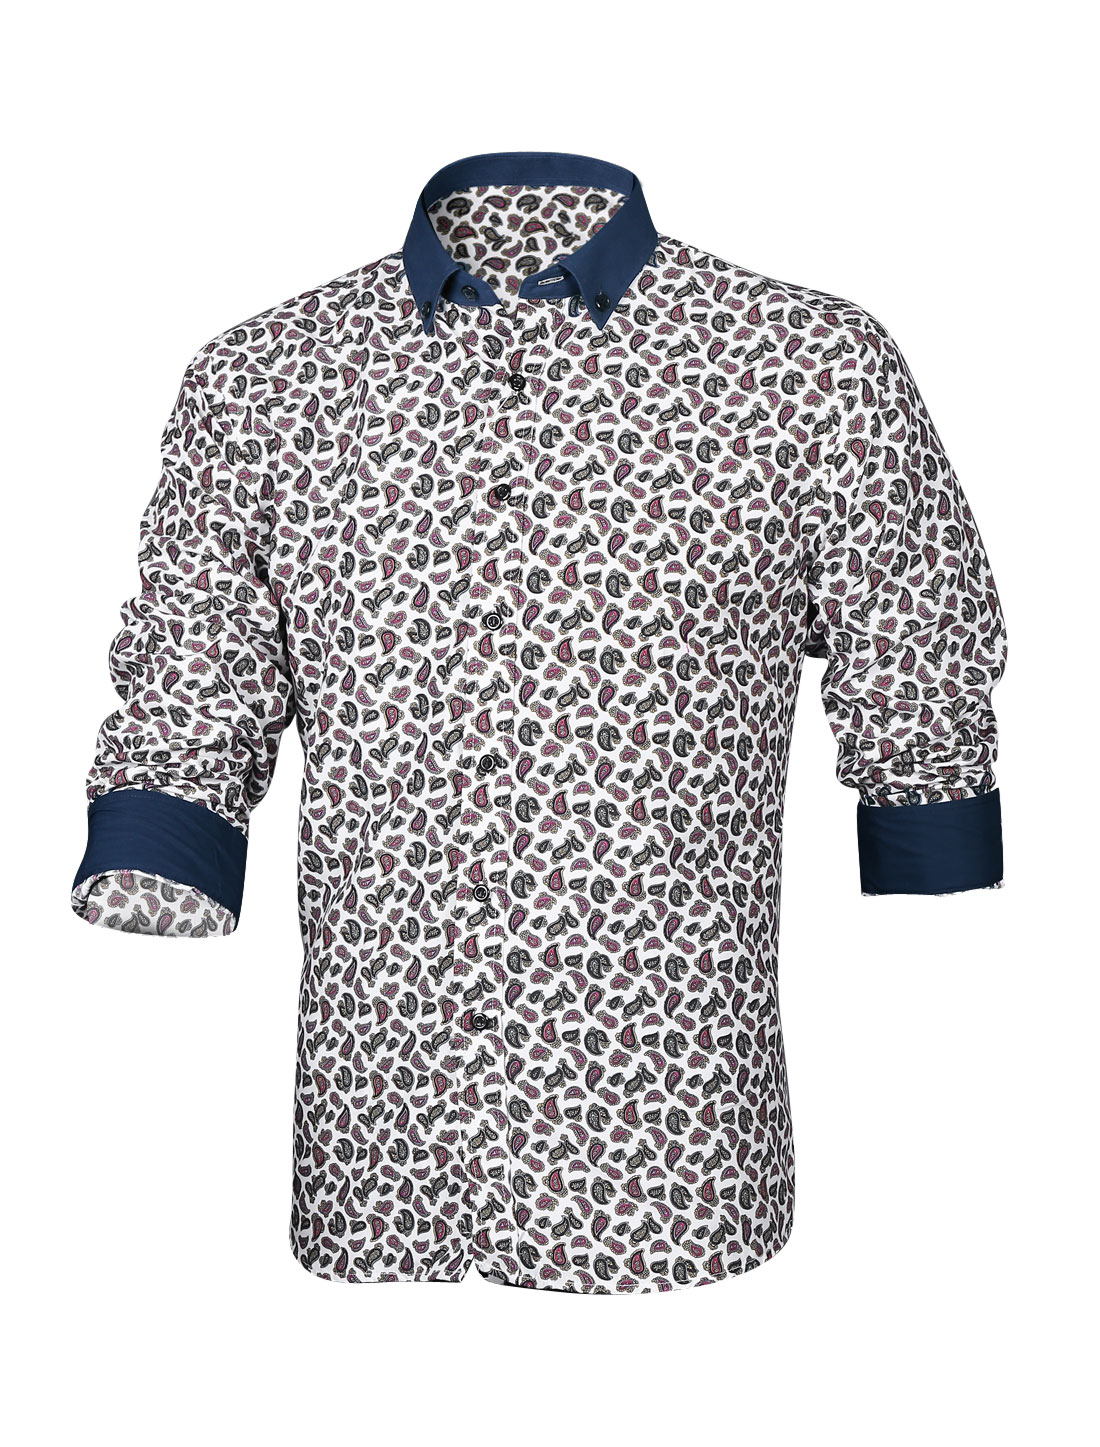 Men Allover Paisleys Prints Button Up Casual Shirt White M